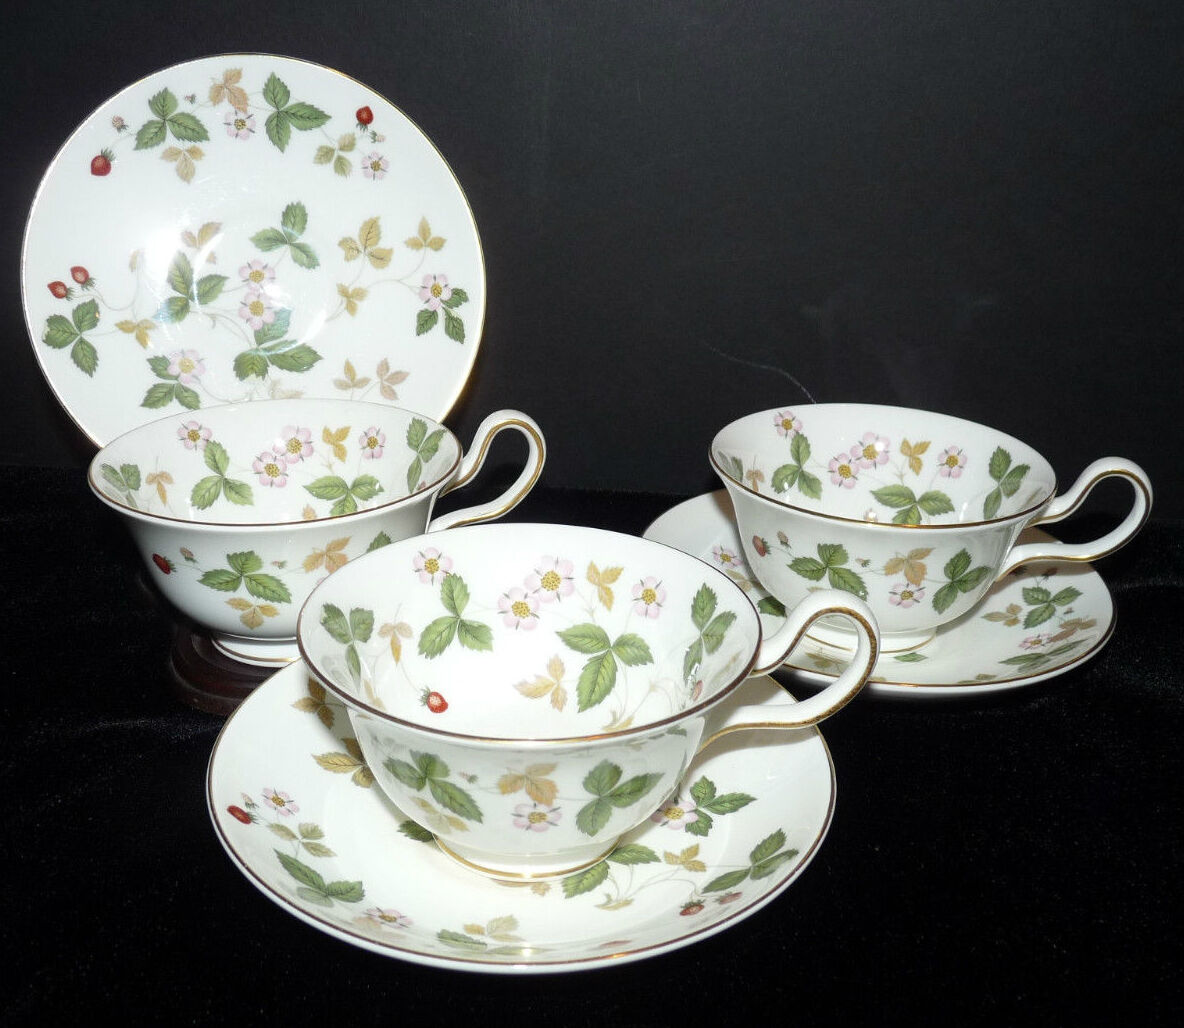 Top 5 Bone China Manufacturers